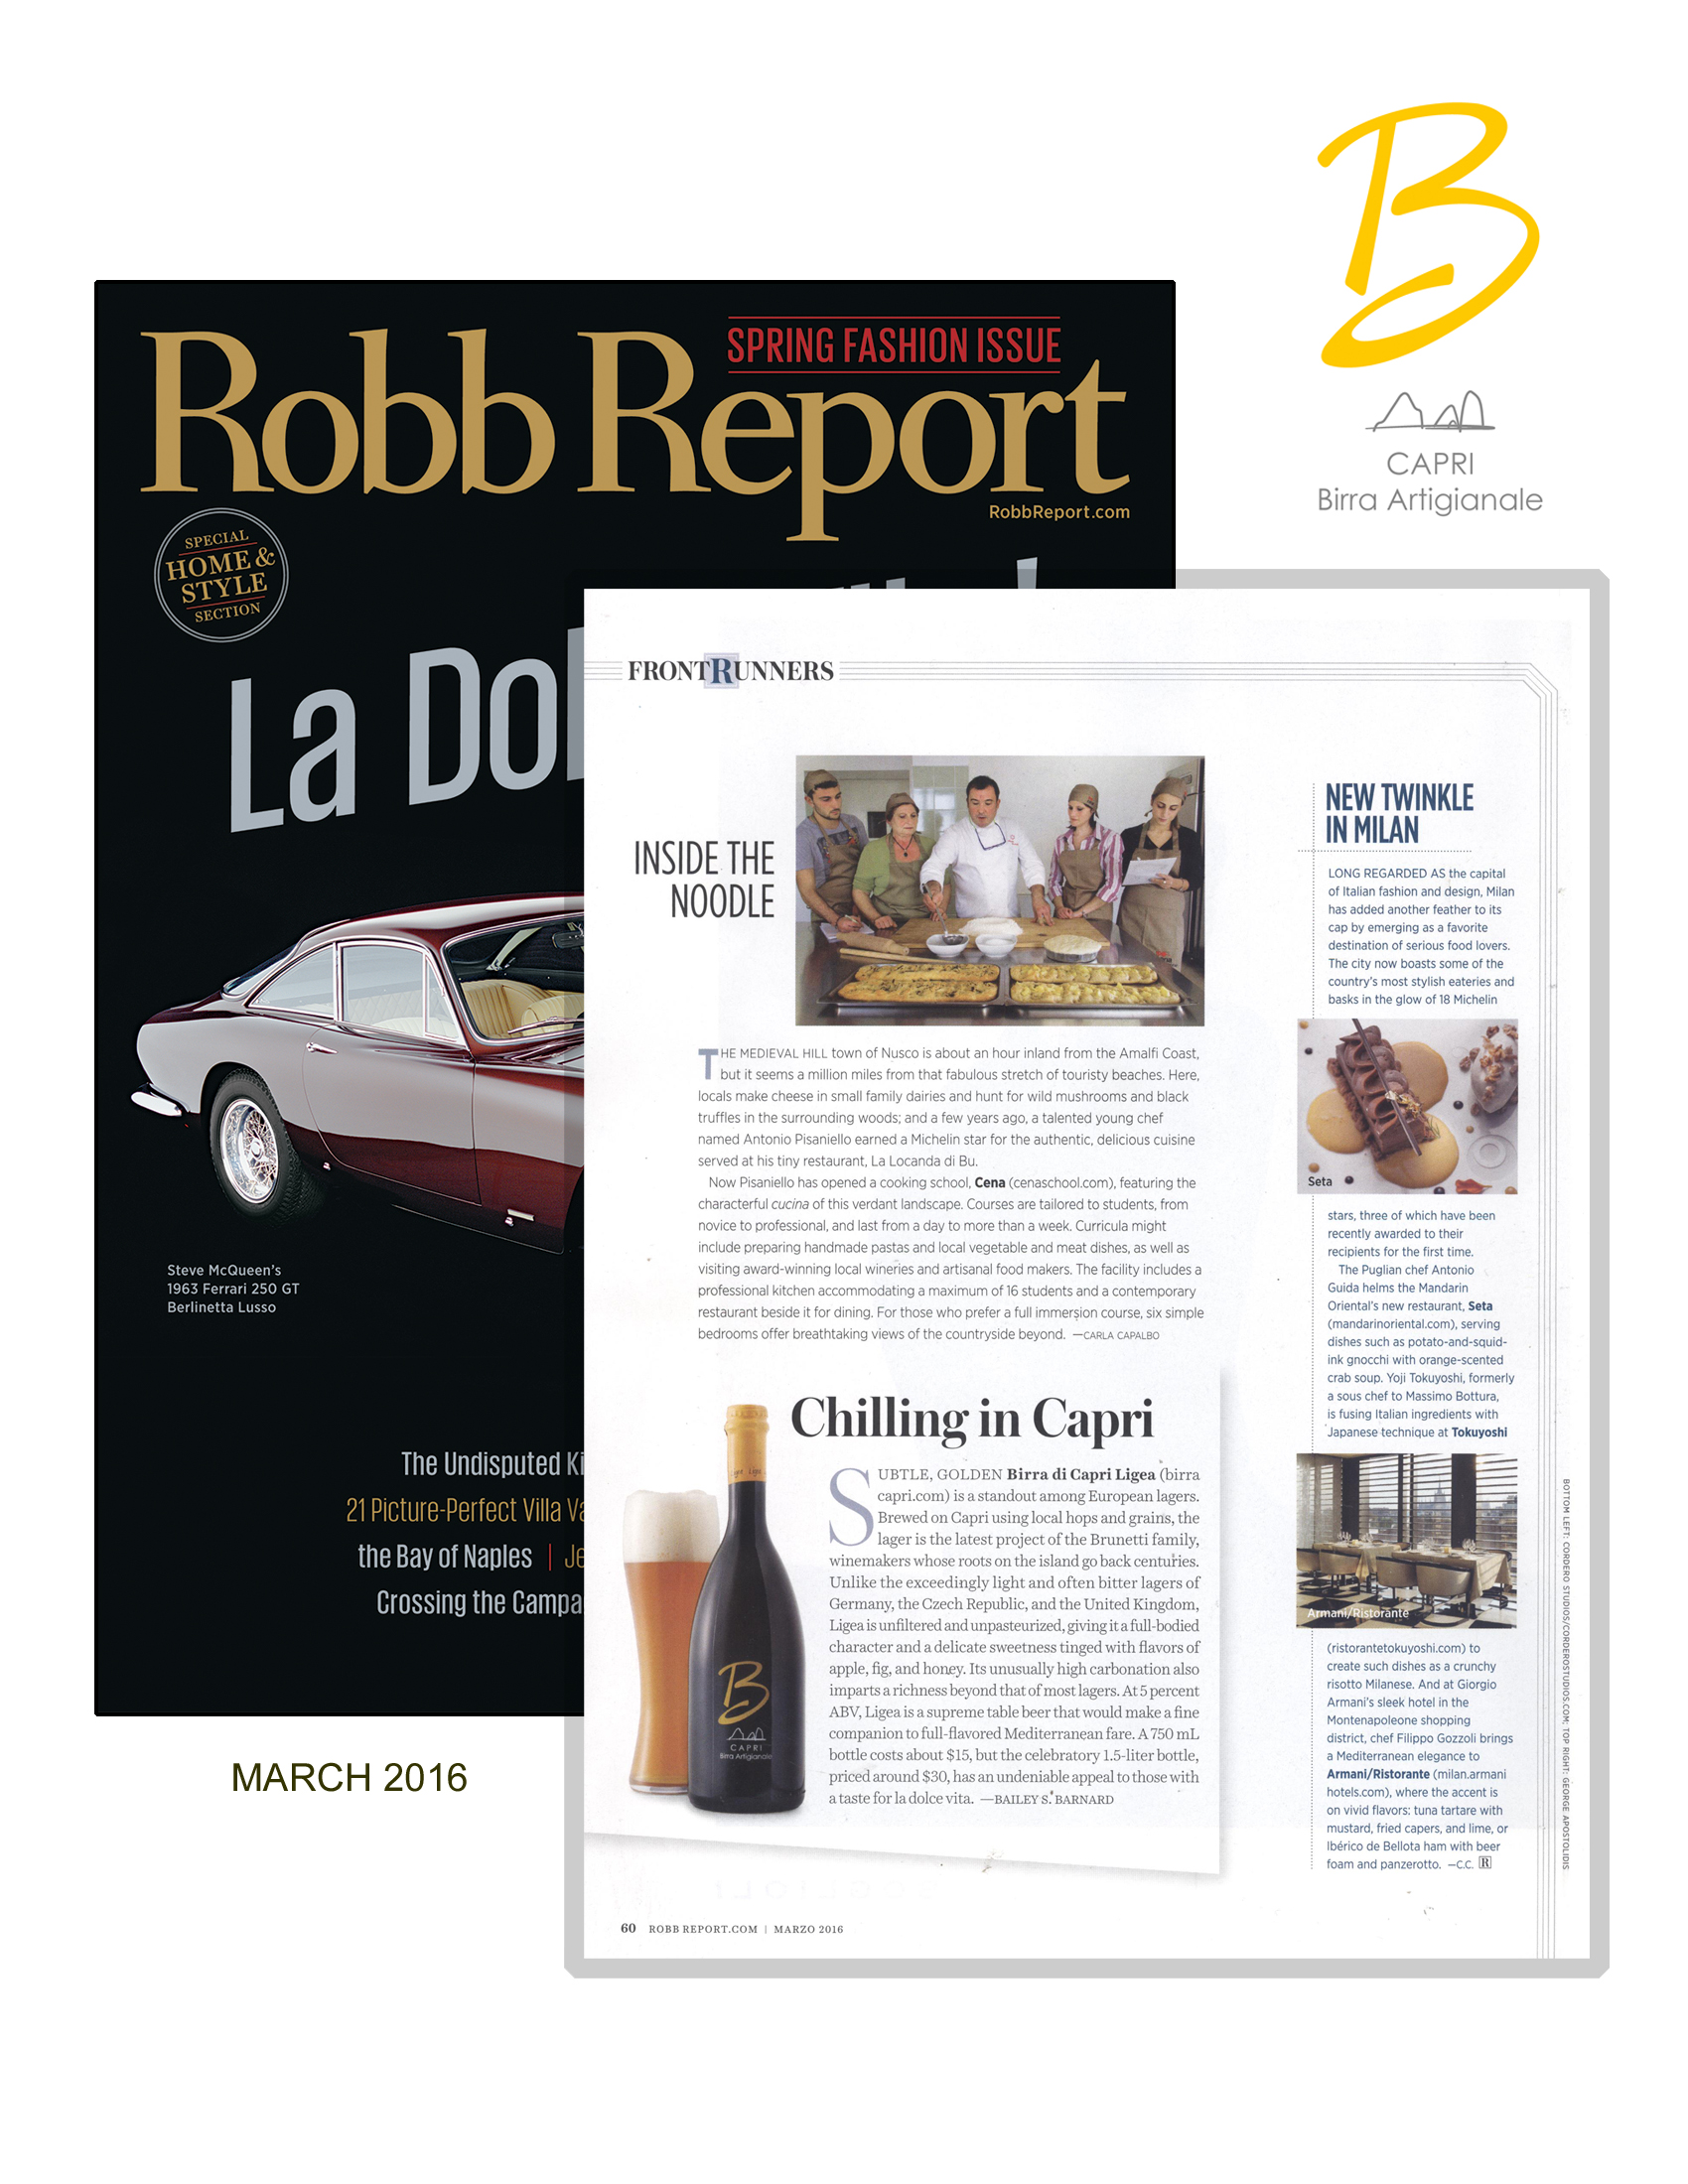 RobbReportPrint_March2016.jpg